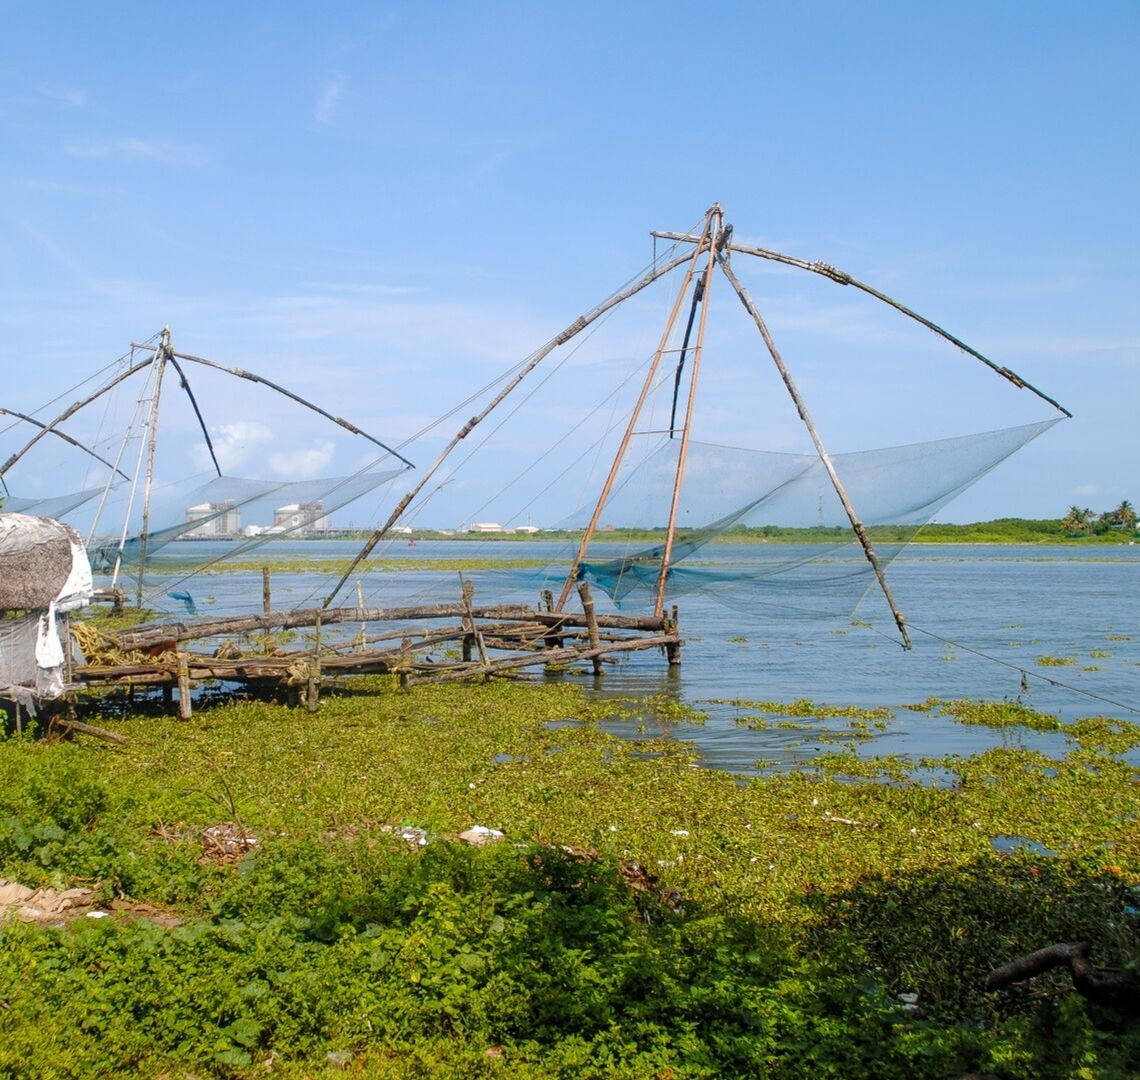 10 Day Kerala Itinerary - the enormous cantilevered fishing nets in Cochin / Kochi. There is green foliage in the foreground and the sea in the background with blue sky